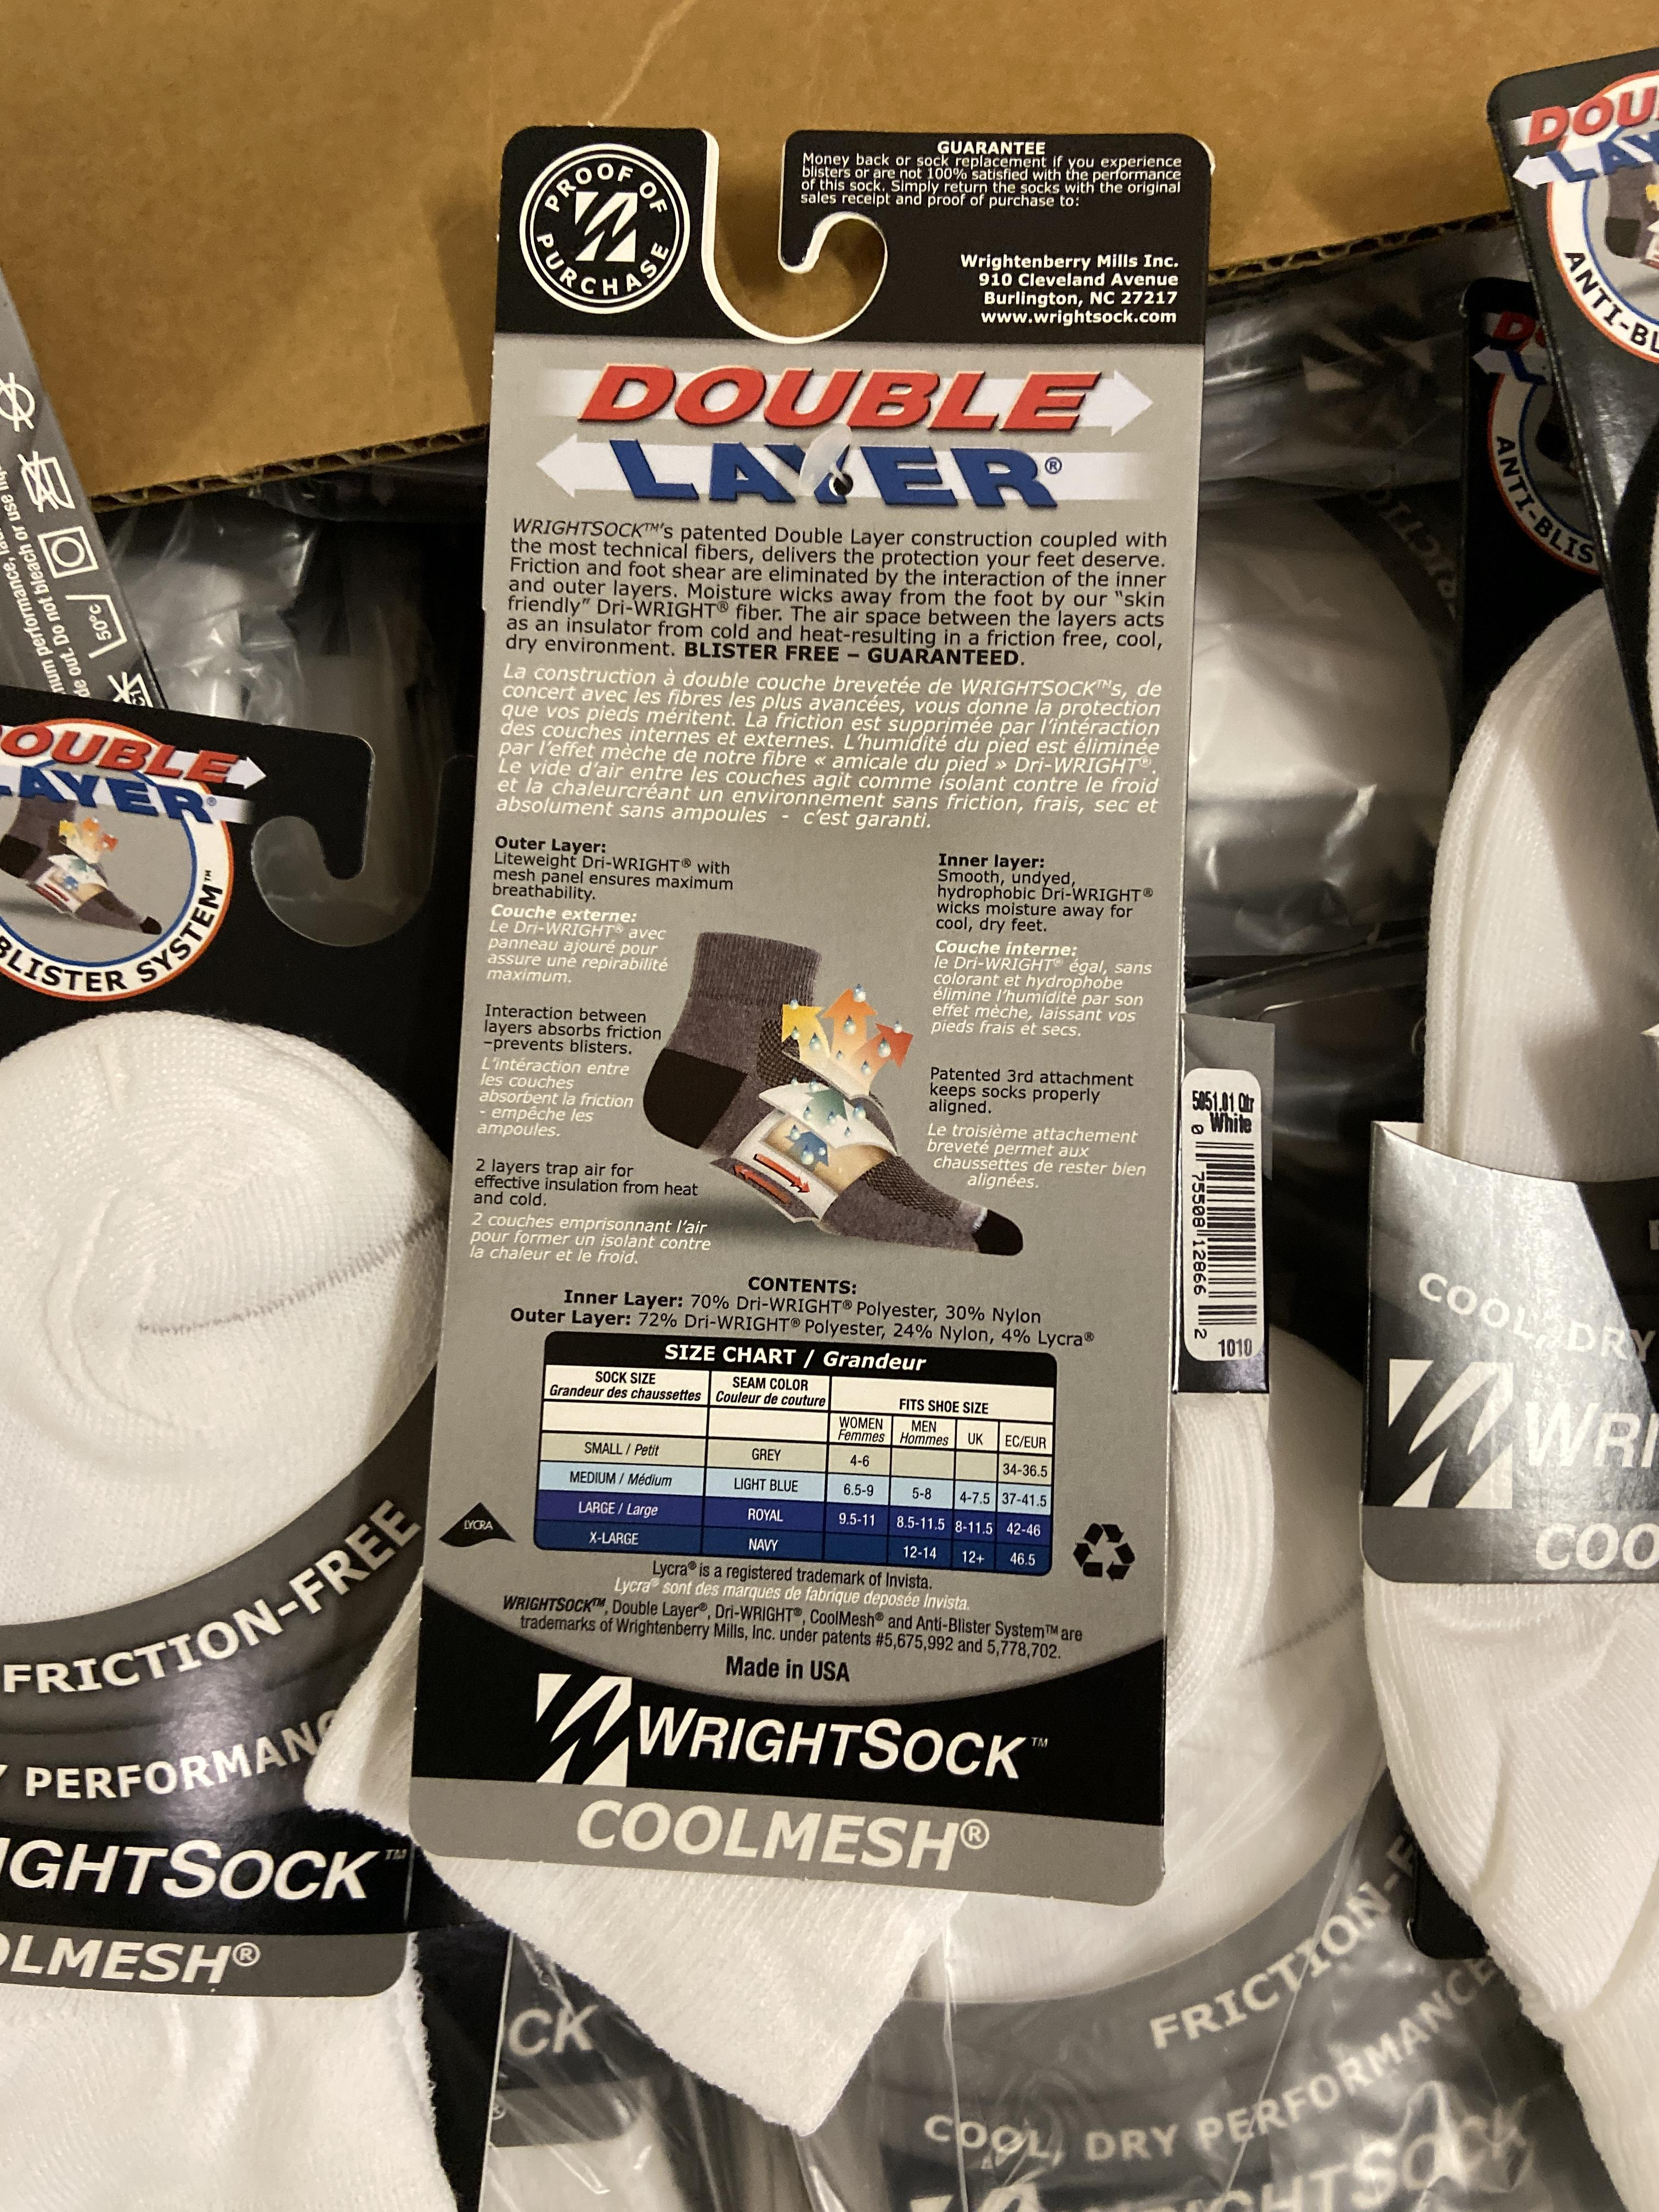 Lot 6 - 250+ packs of New Socks, Wrightsock Coolmesh, Double Layer, White Each lot has approx 250 packs,